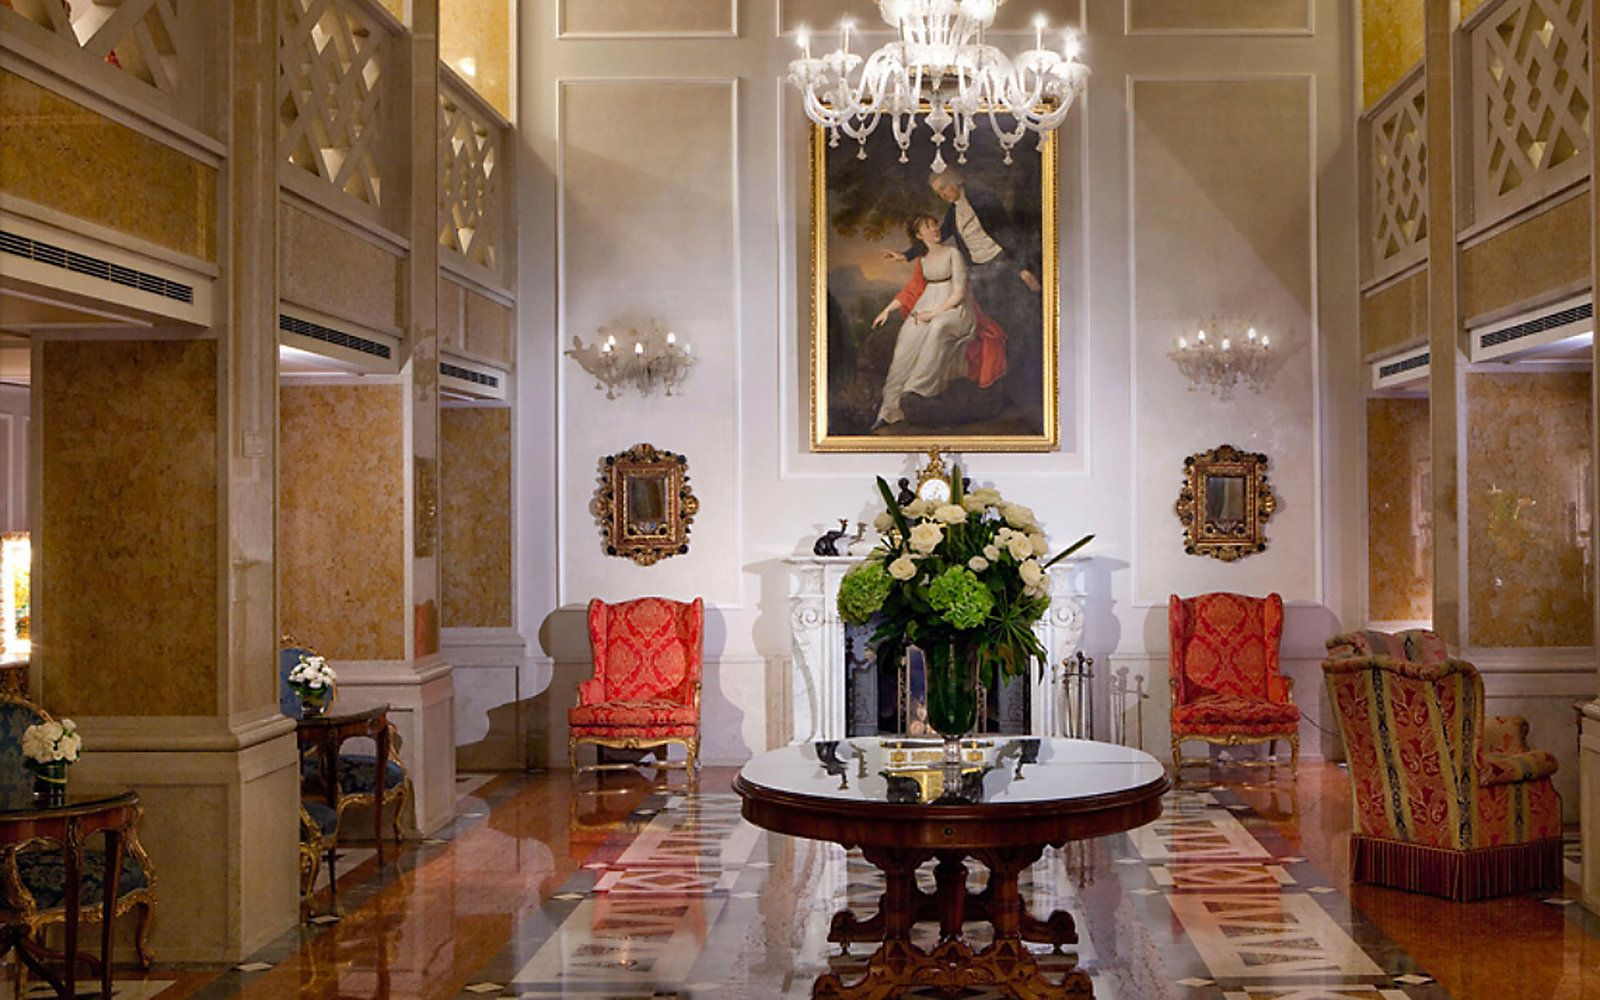 Baglioni Hotel Luna In Venice Italy Is Just Steps From Piazza San Marco And Features